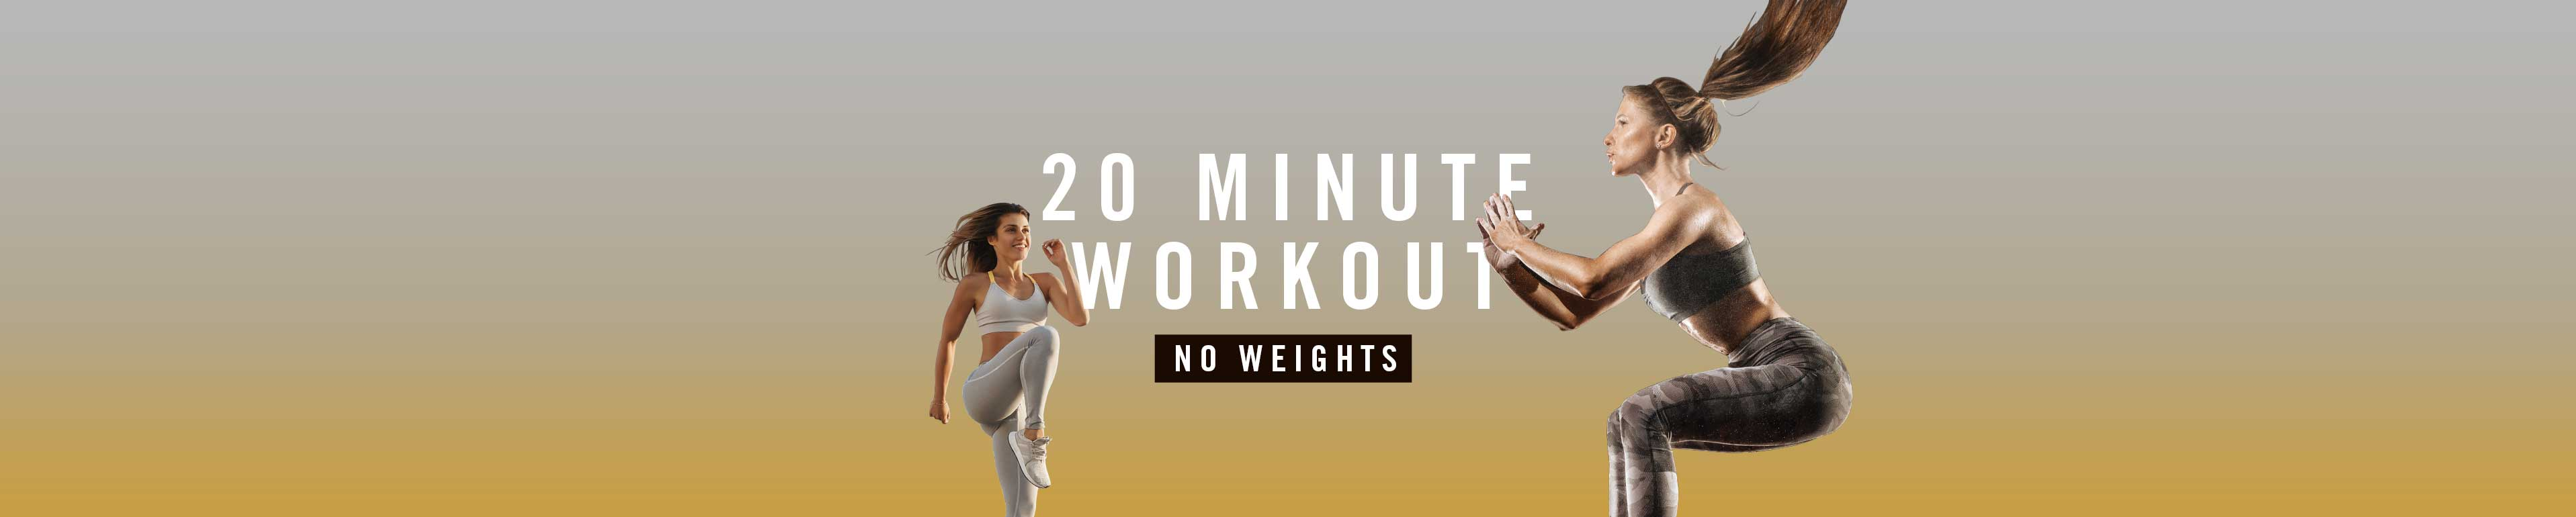 20190930 20 minute workout Blog Banner 3834x770